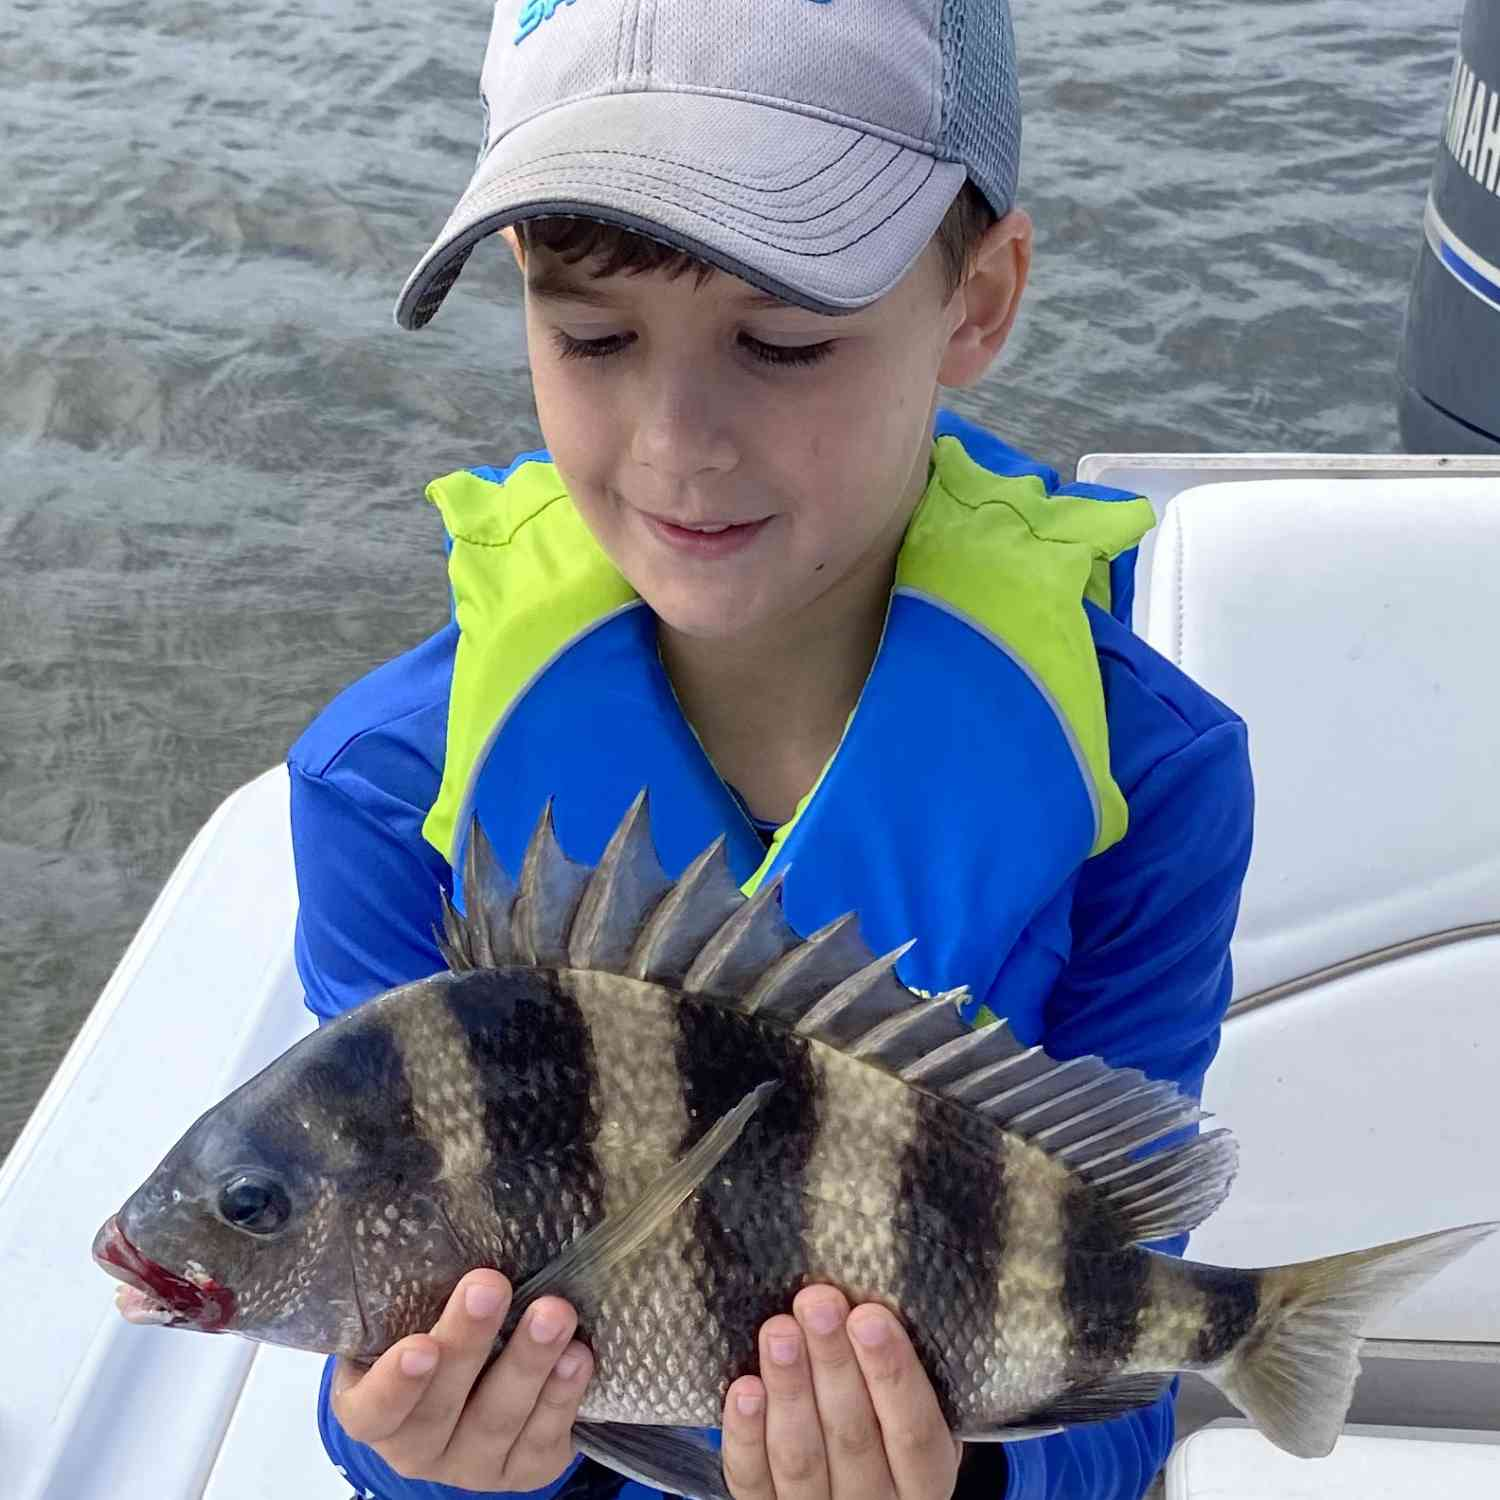 Title: Sheephead Sunday - On board their Sportsman Tournament 214 Bay Boat - Location: Shell Beach LA. Participating in the Photo Contest #SportsmanApril2020